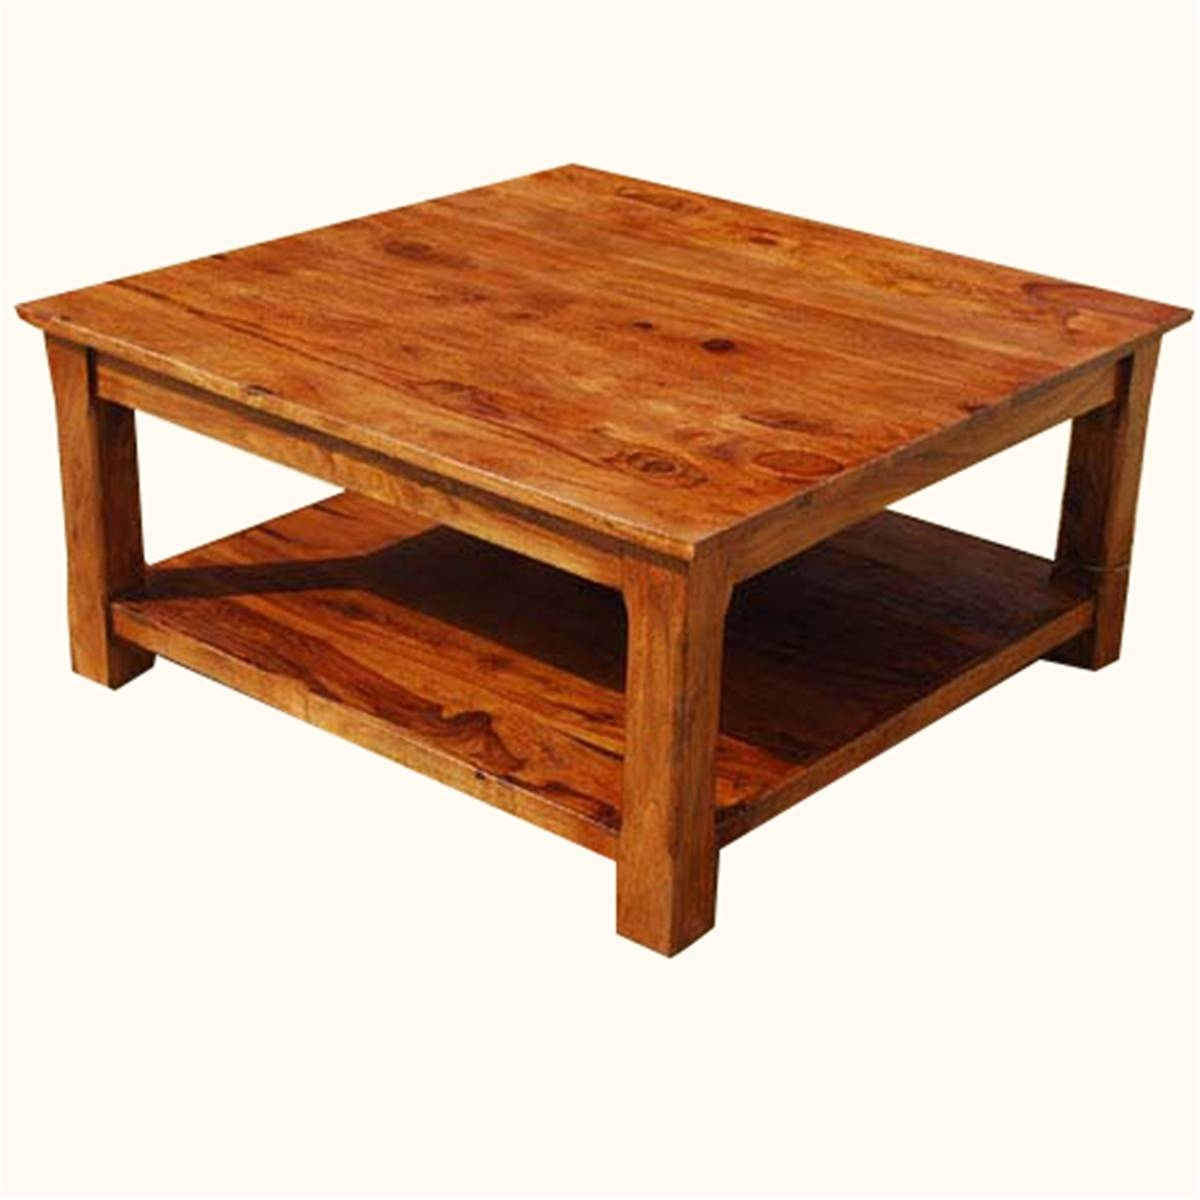 Big Wooden Coffee Table - Coffee Addicts in Large Solid Wood Coffee Tables (Image 1 of 15)